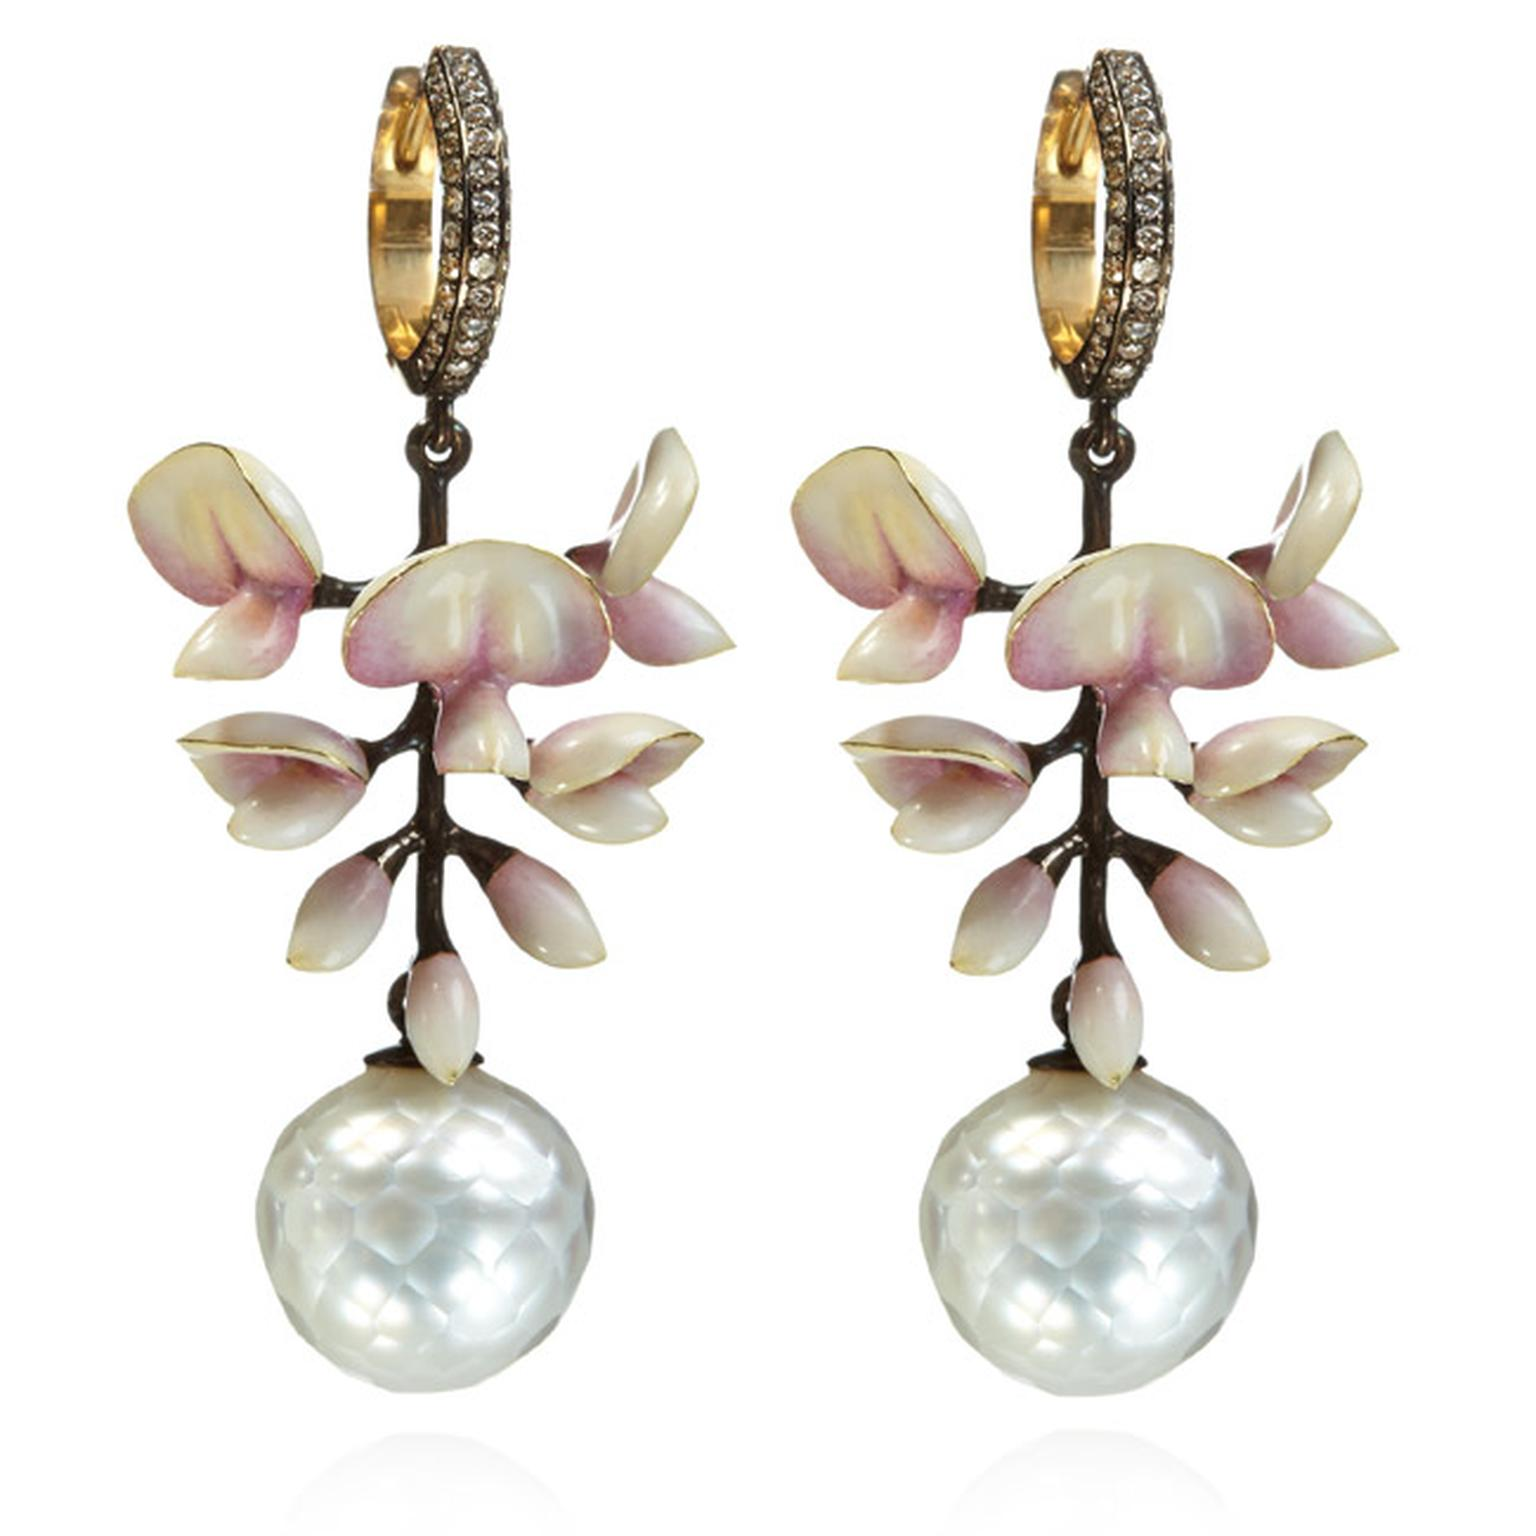 Annoushka-Wisteria-Earrings-main